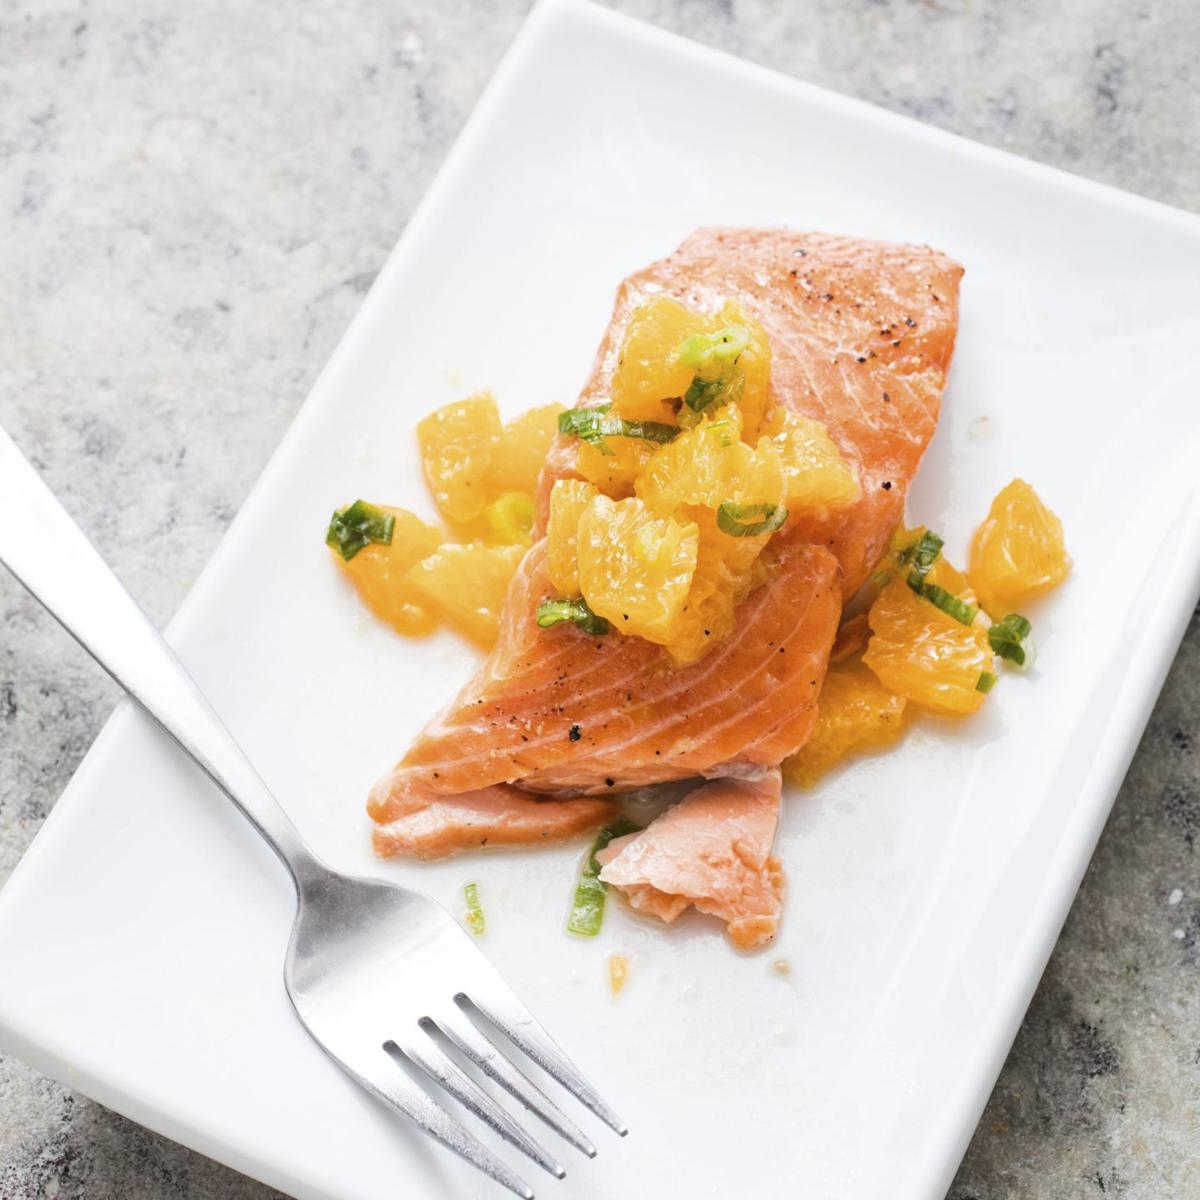 America's Test Kitchen: For this roasted salmon, skip the butter and